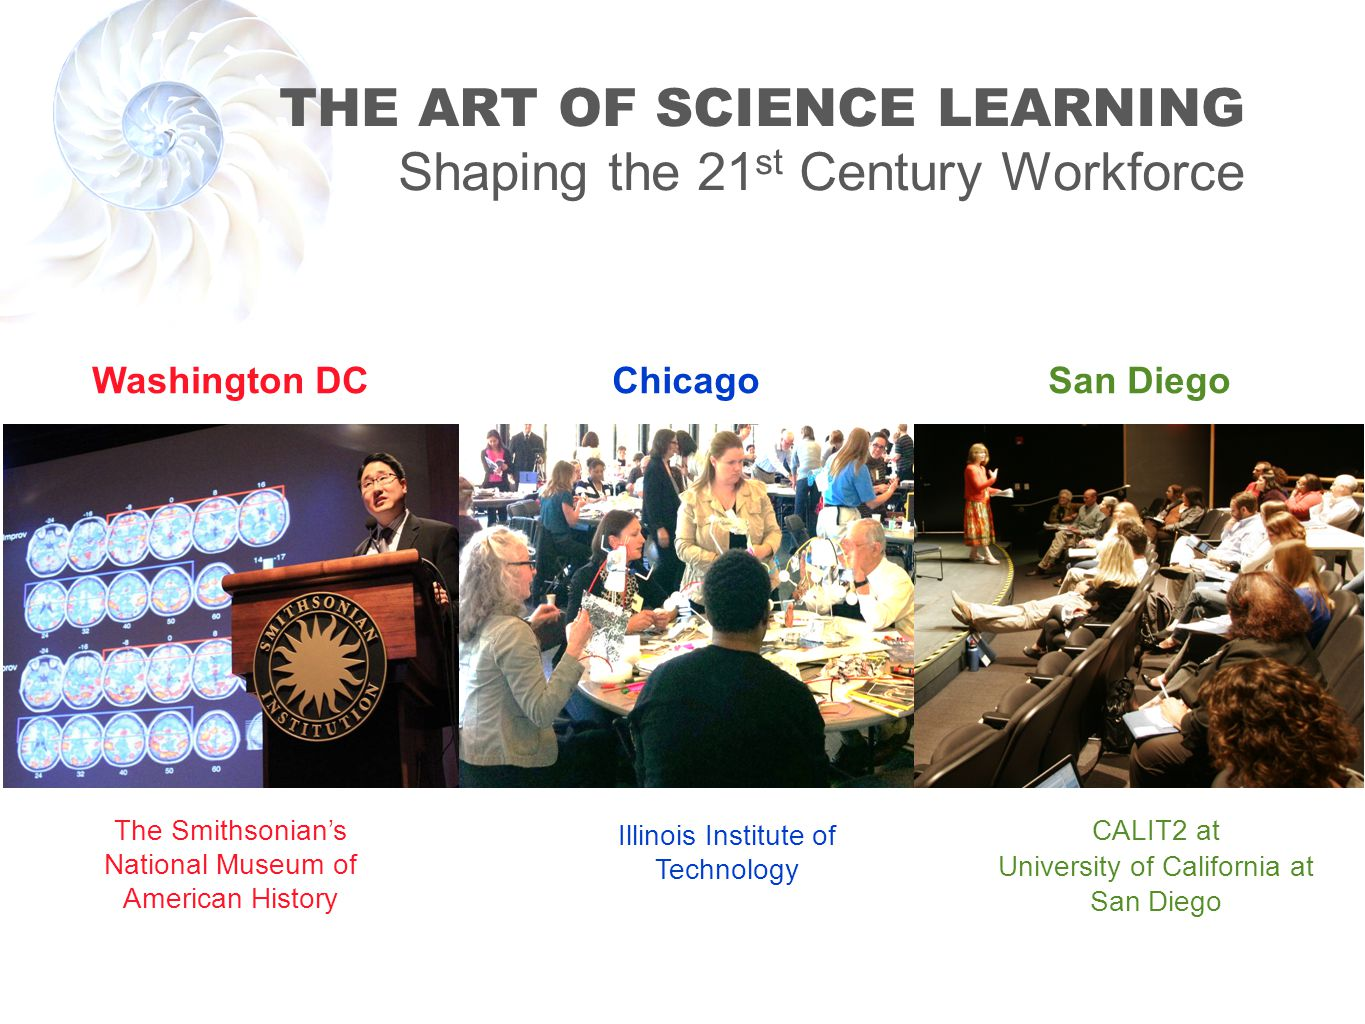 THE ART OF SCIENCE LEARNING Shaping the 21 st Century Workforce Washington DC The Smithsonians National Museum of American History Chicago Illinois Institute of Technology San Diego CALIT2 at University of California at San Diego